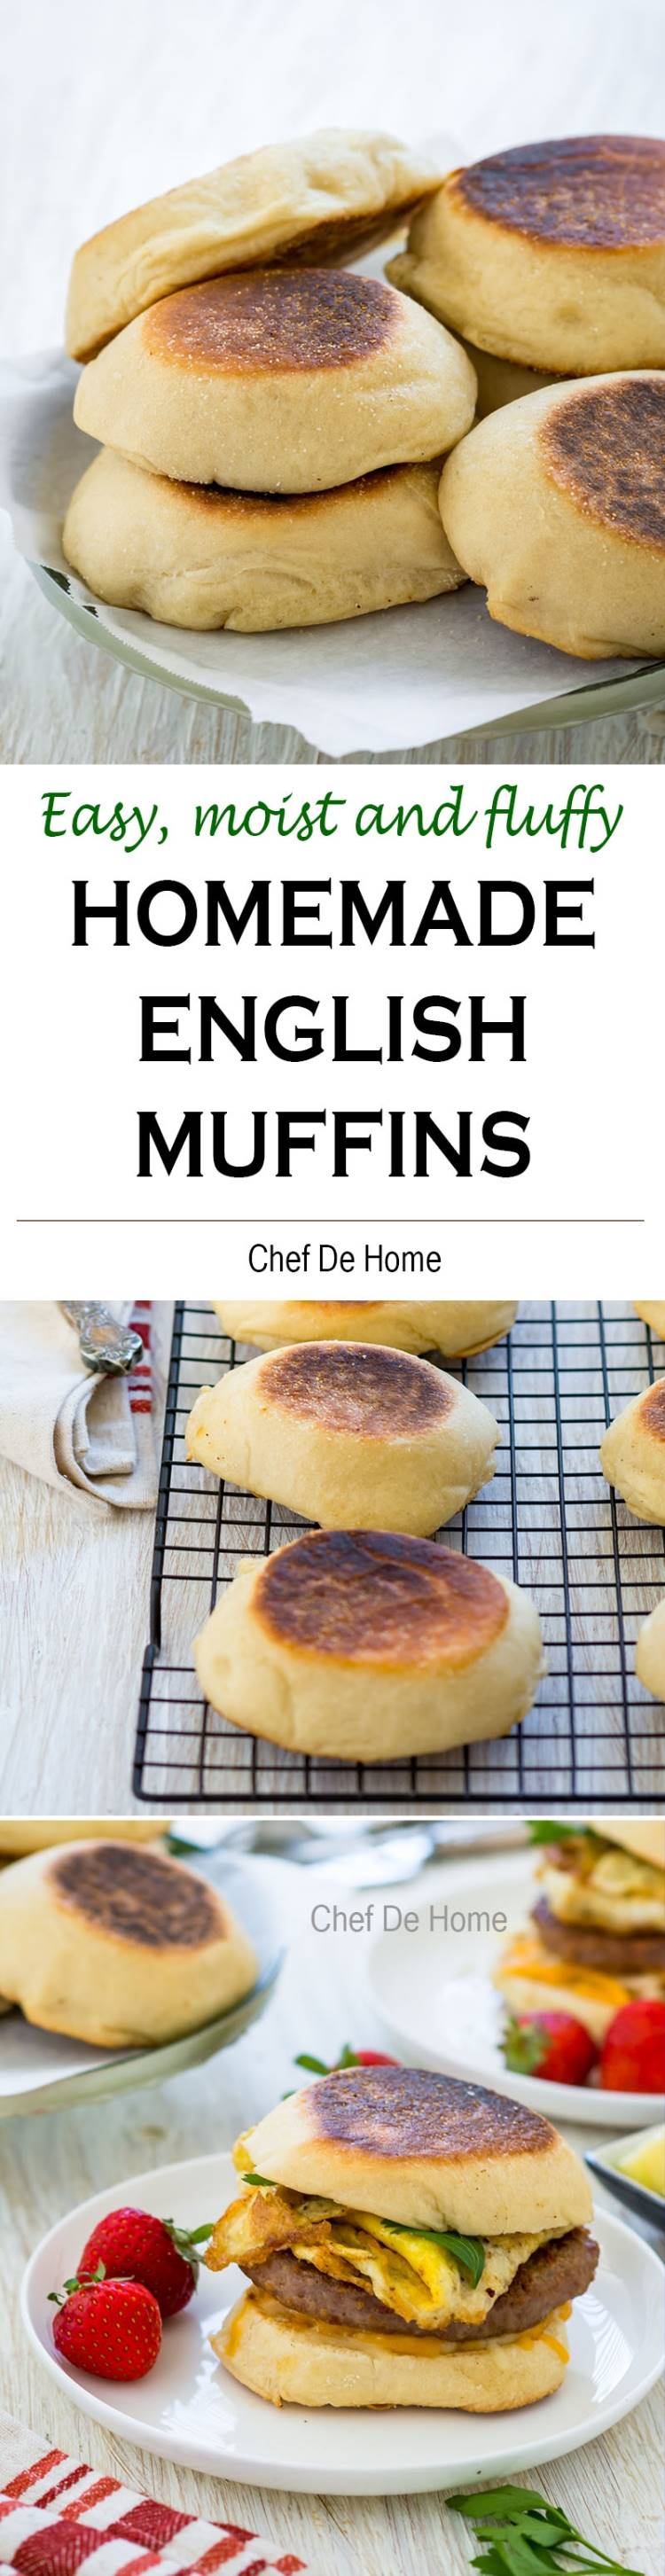 Easy step by step recipe to learn how to make English Muffins | chefdehome.com